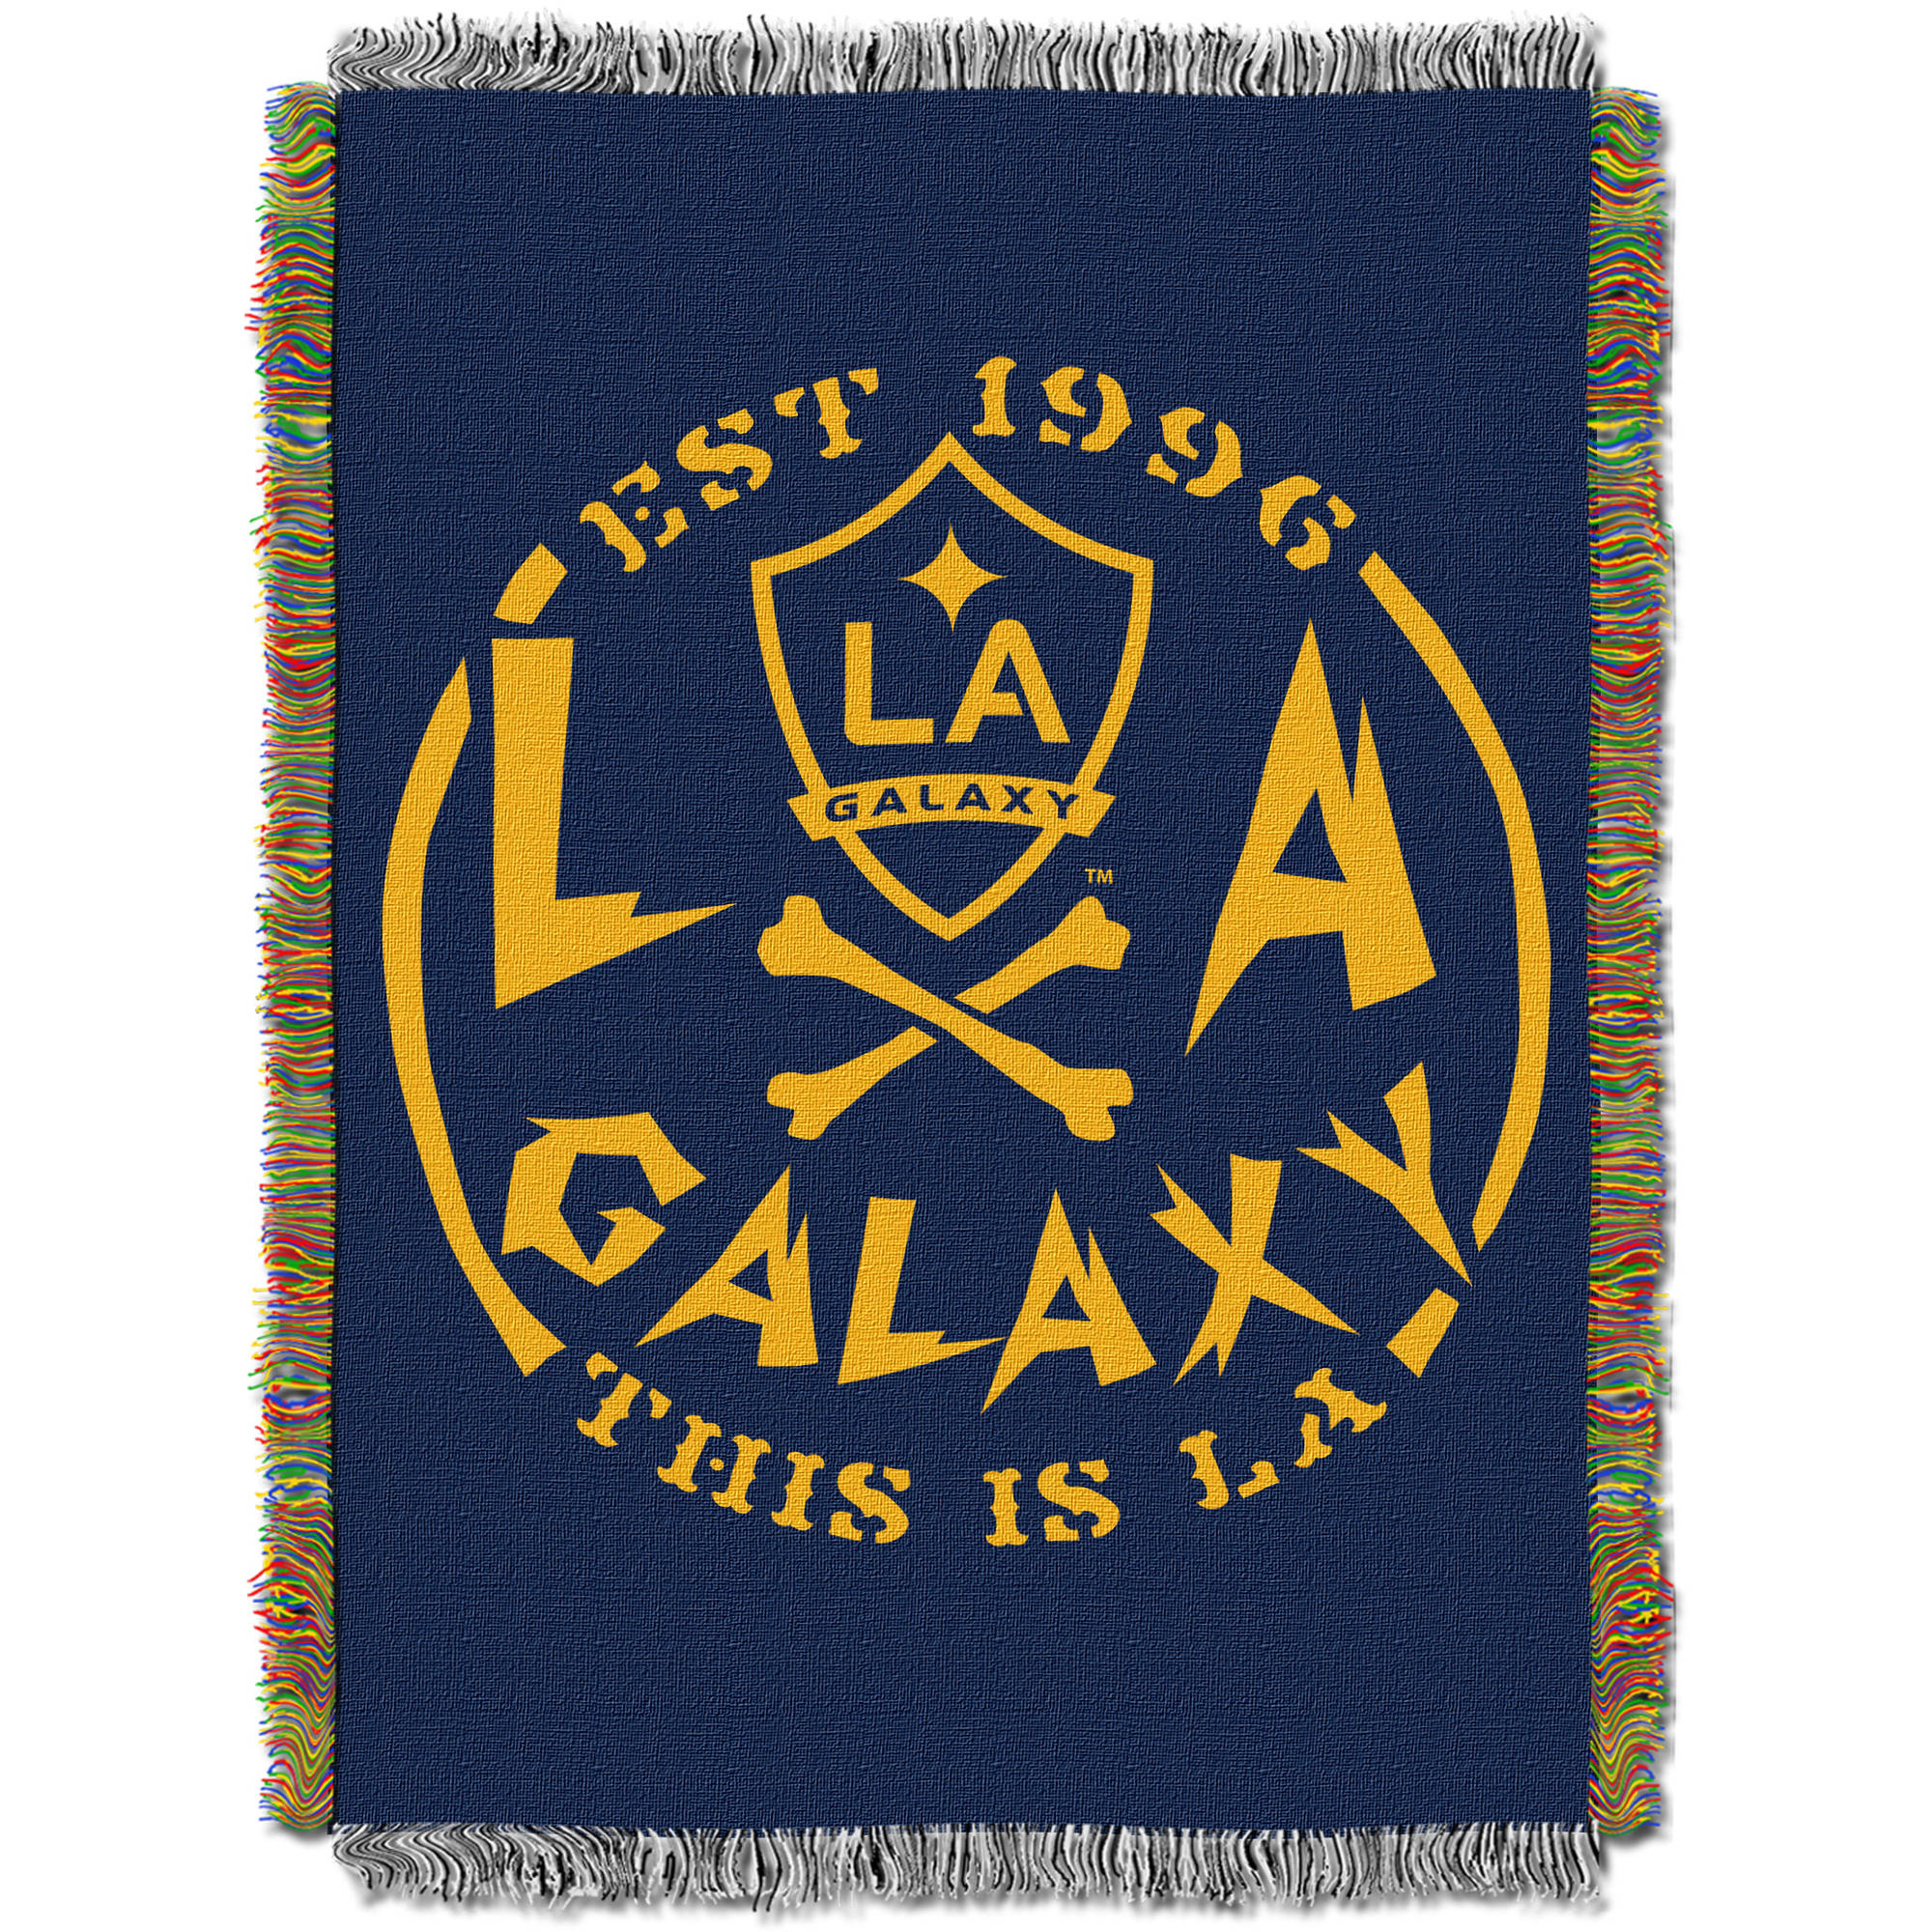 "MLS Los Angeles Galaxy Handmade 48"" x 60"" Woven Tapestry Throw"